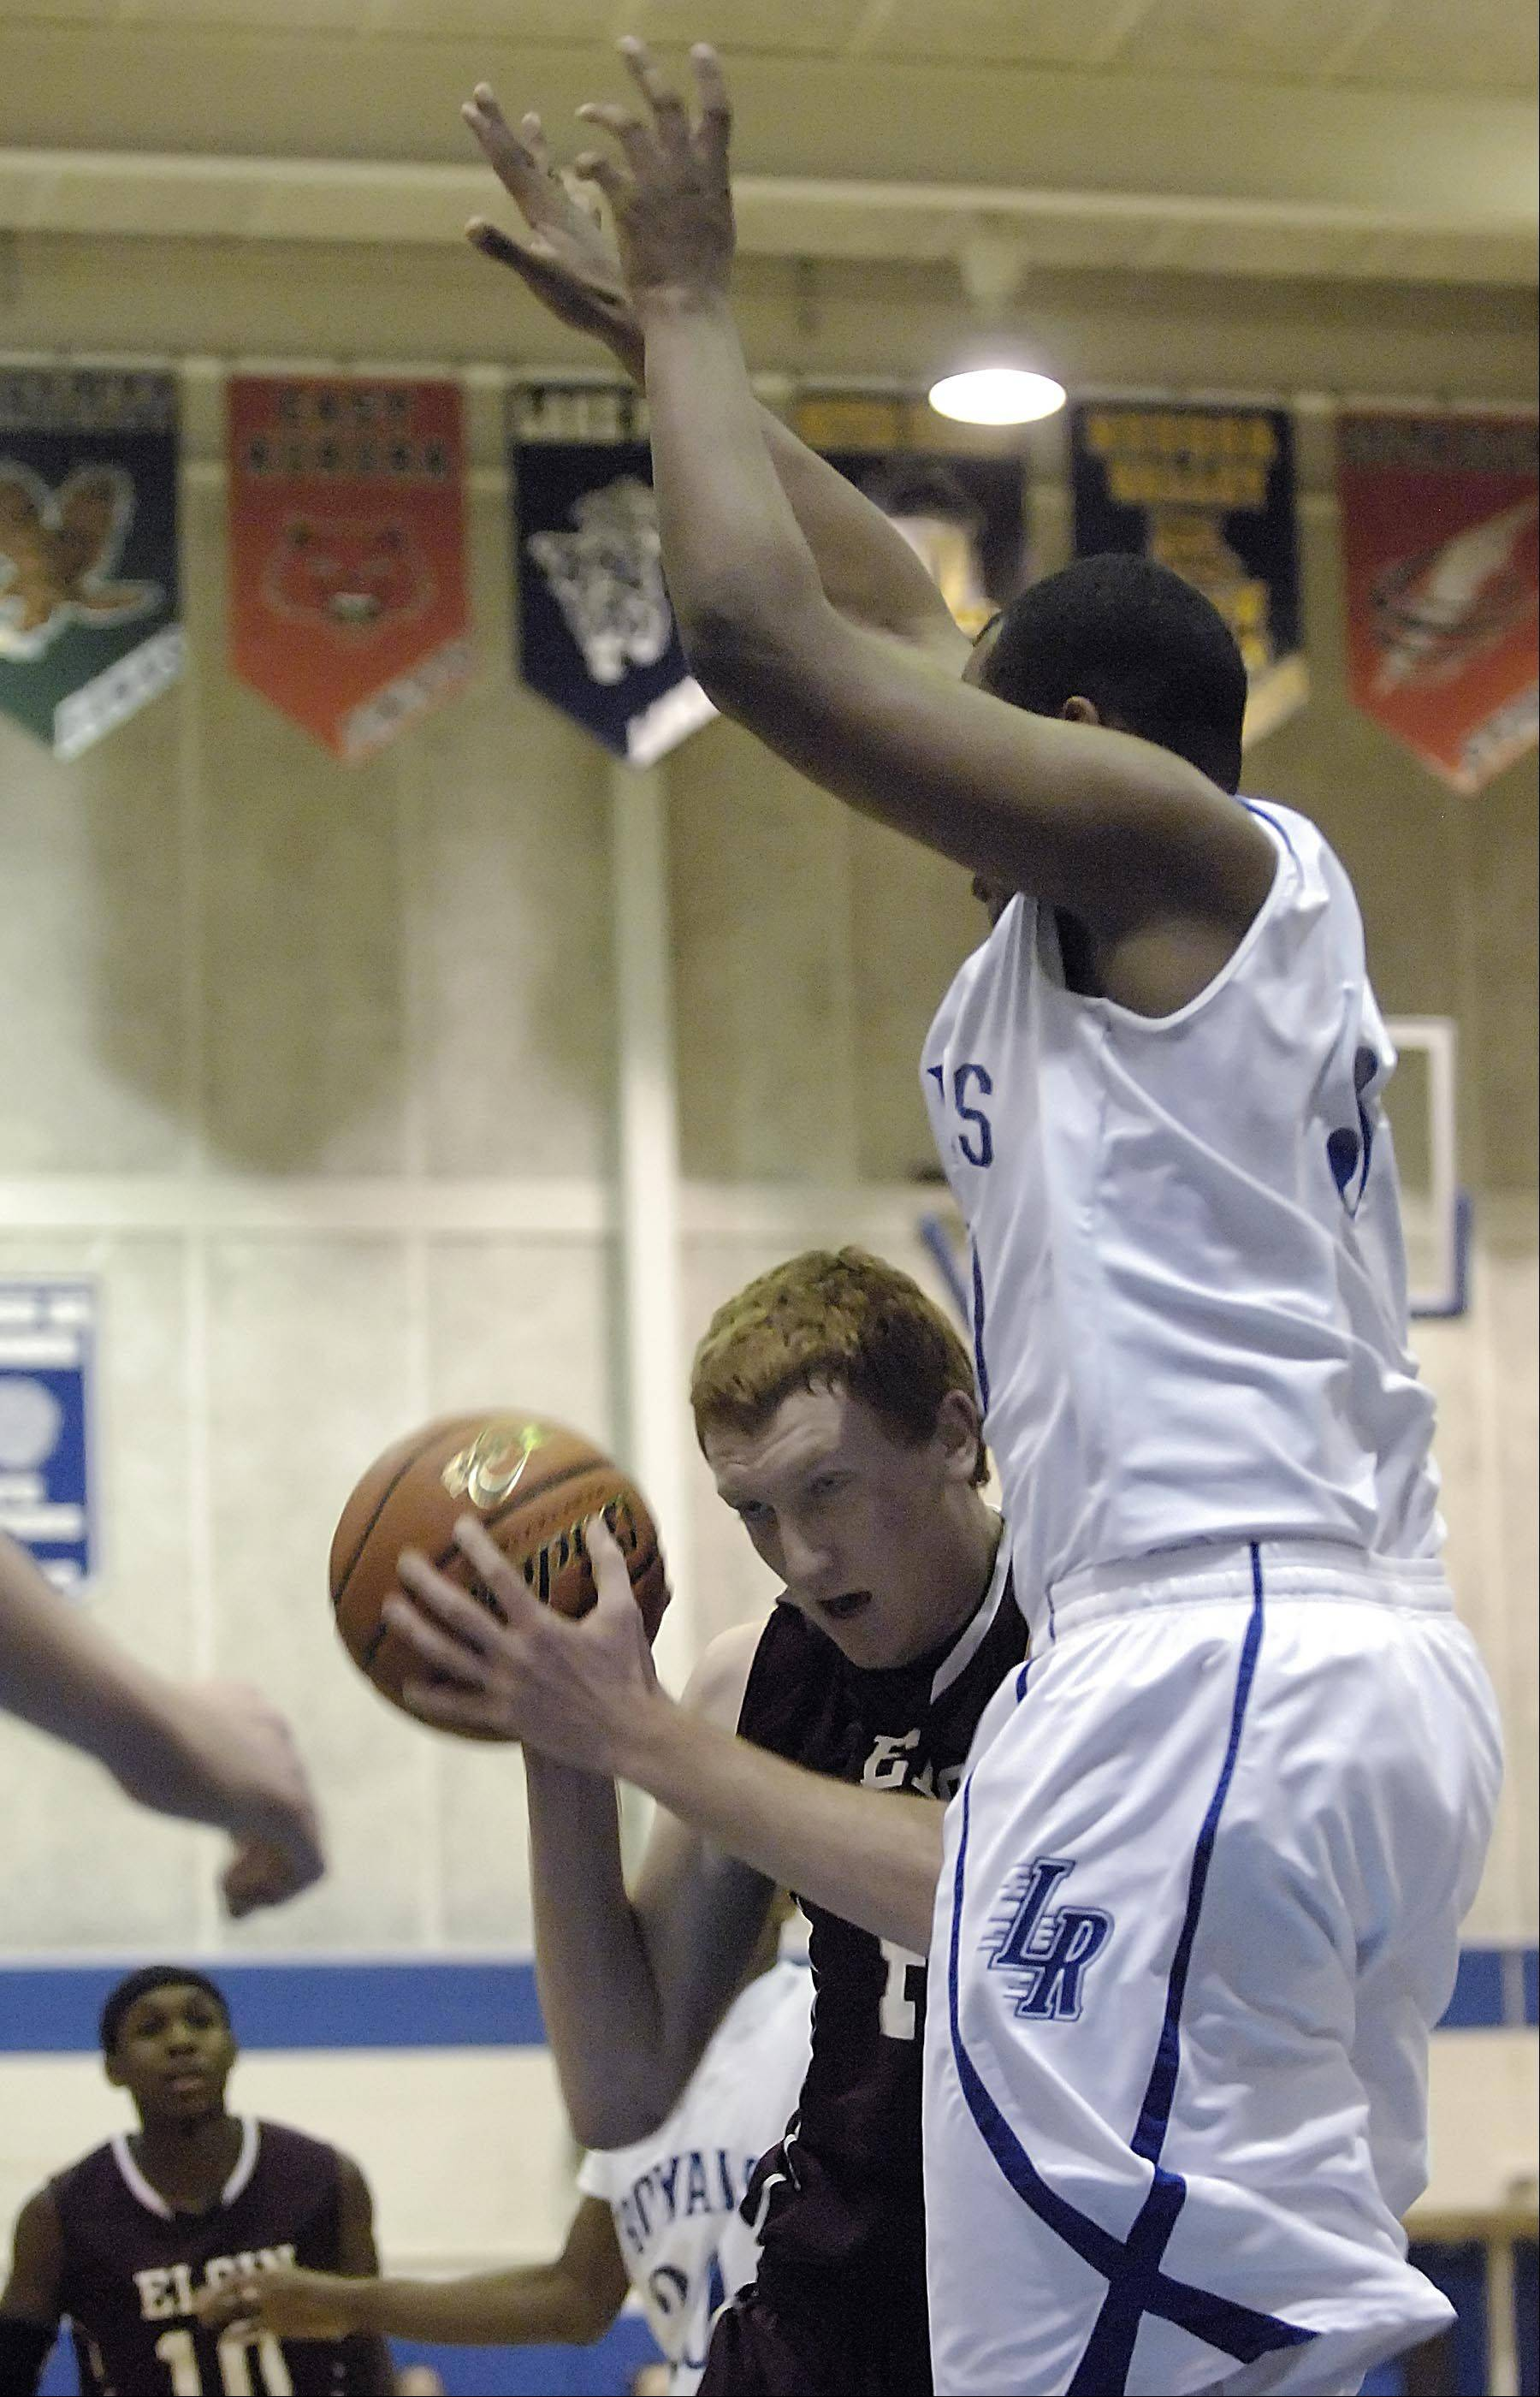 Elgin's Eric Sedlack is fouled by Larkin's Daniel McFadden Wednesday at Larkin High School in Elgin.